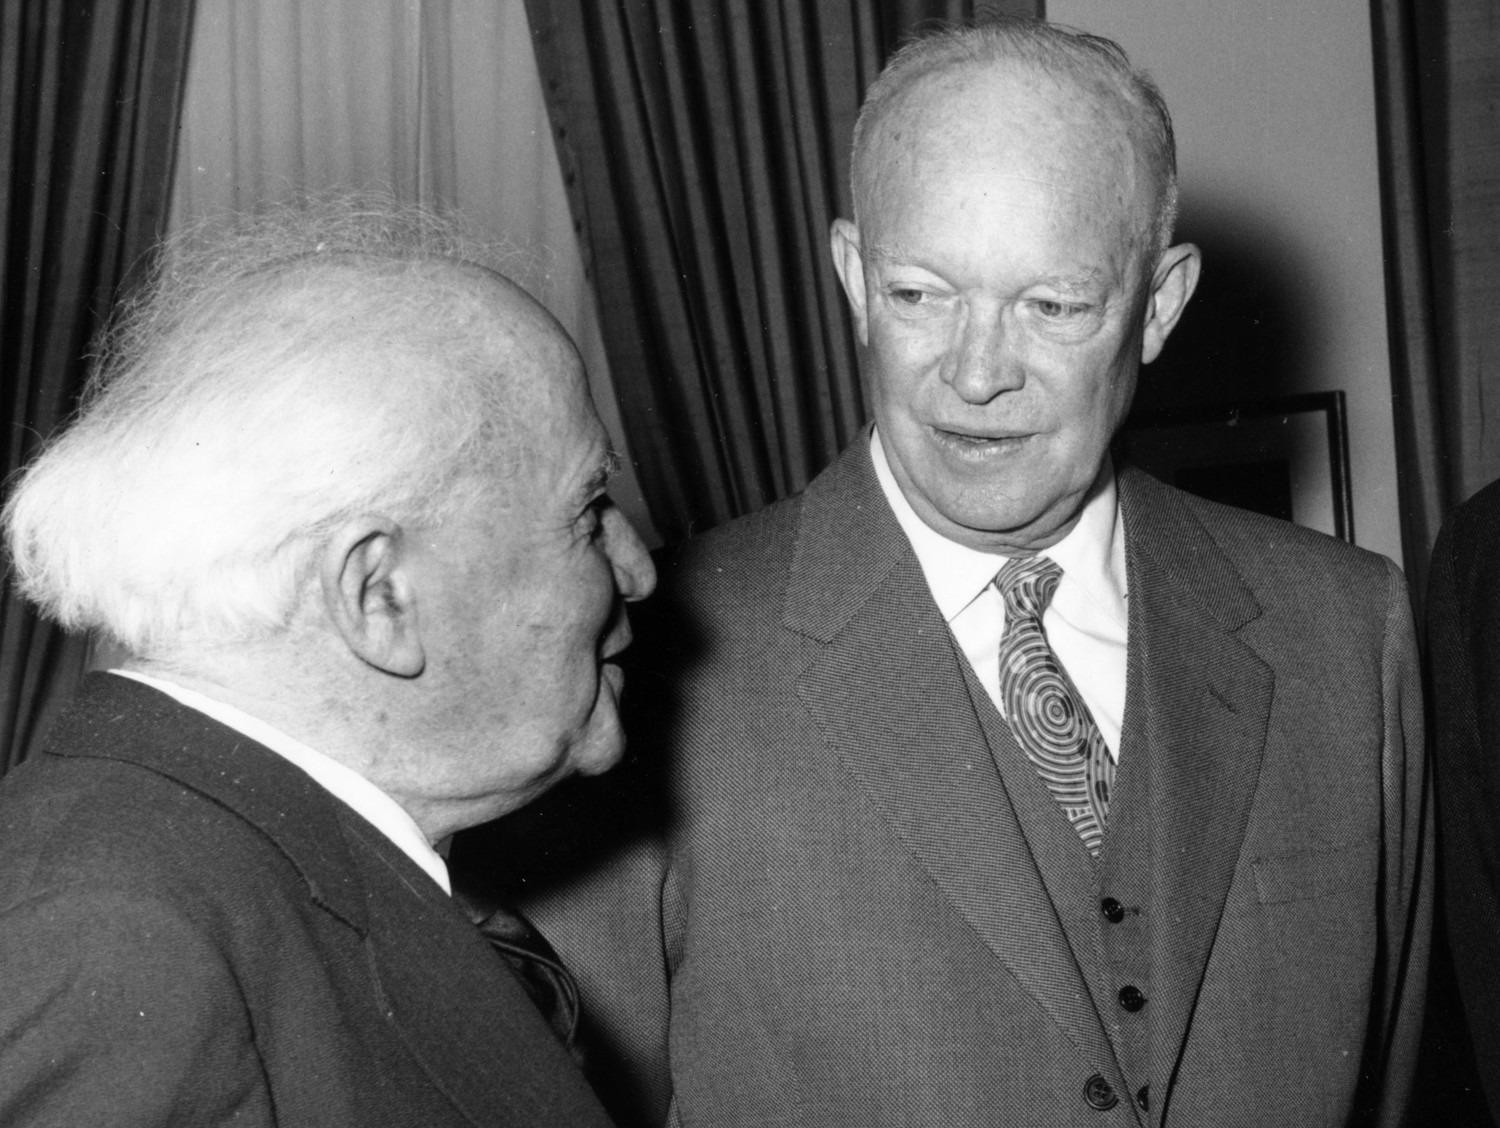 Israeli Prime Minister David Ben-Gurion with President Dwight Eisenhower at the White House on March 12, 1960.